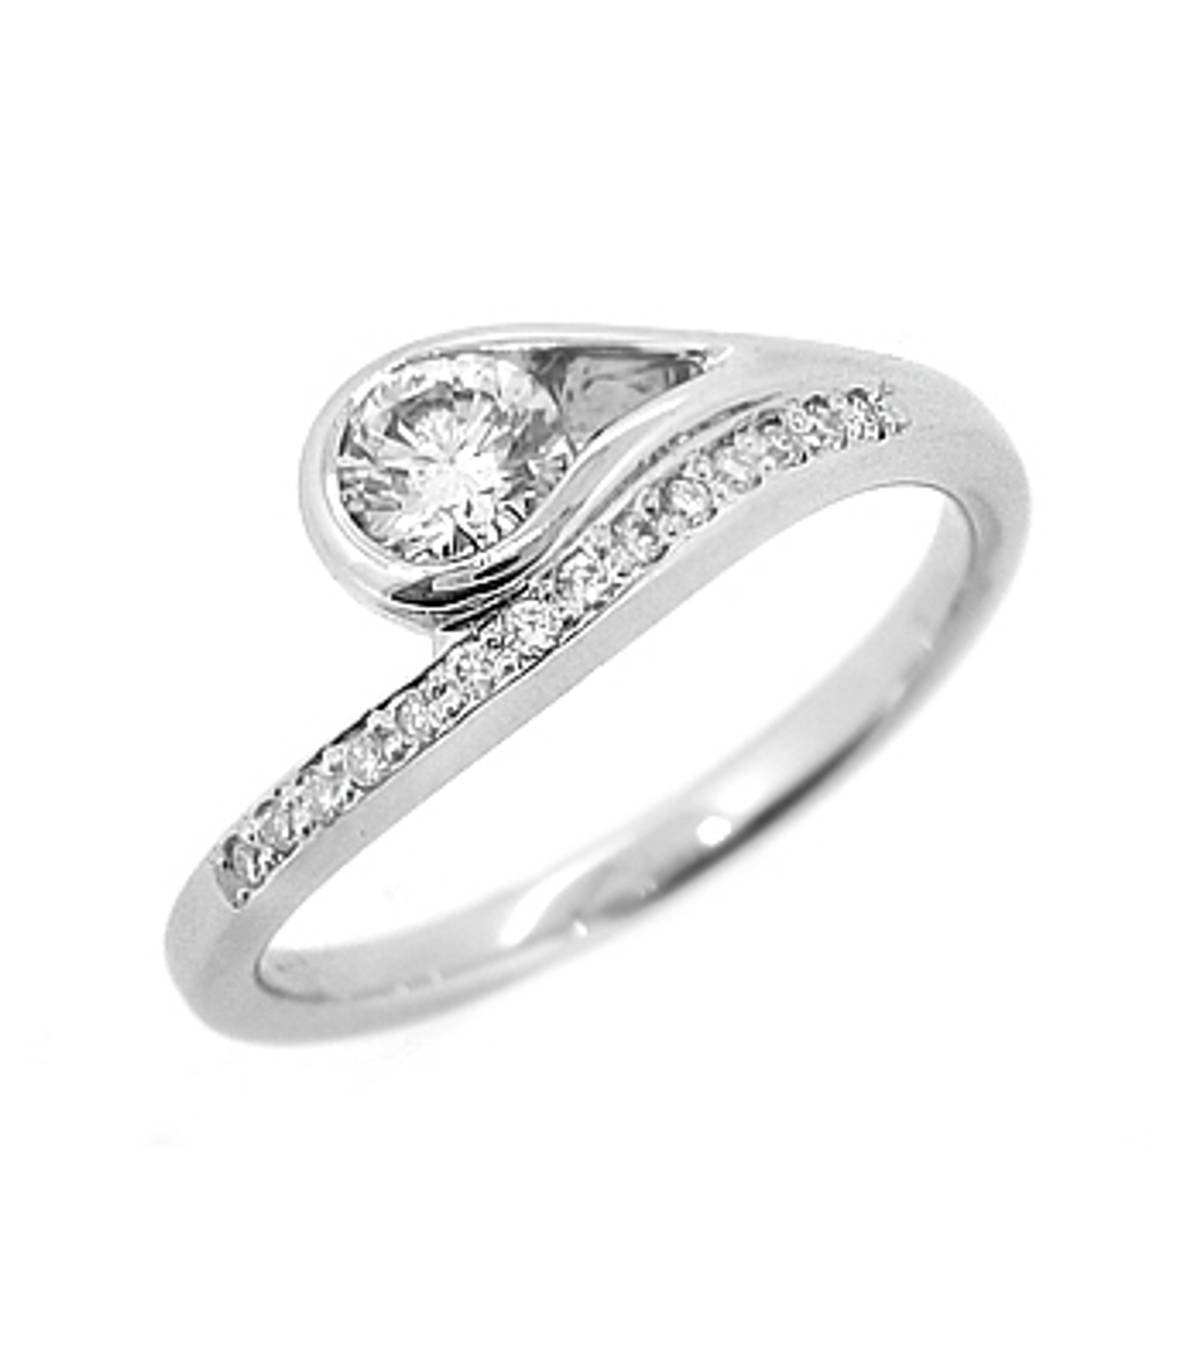 Single stone solitaire ring with diamond shouldersPictured item:  0.28ct/0.10cts  brilliant cut diamond set in 18k white gold